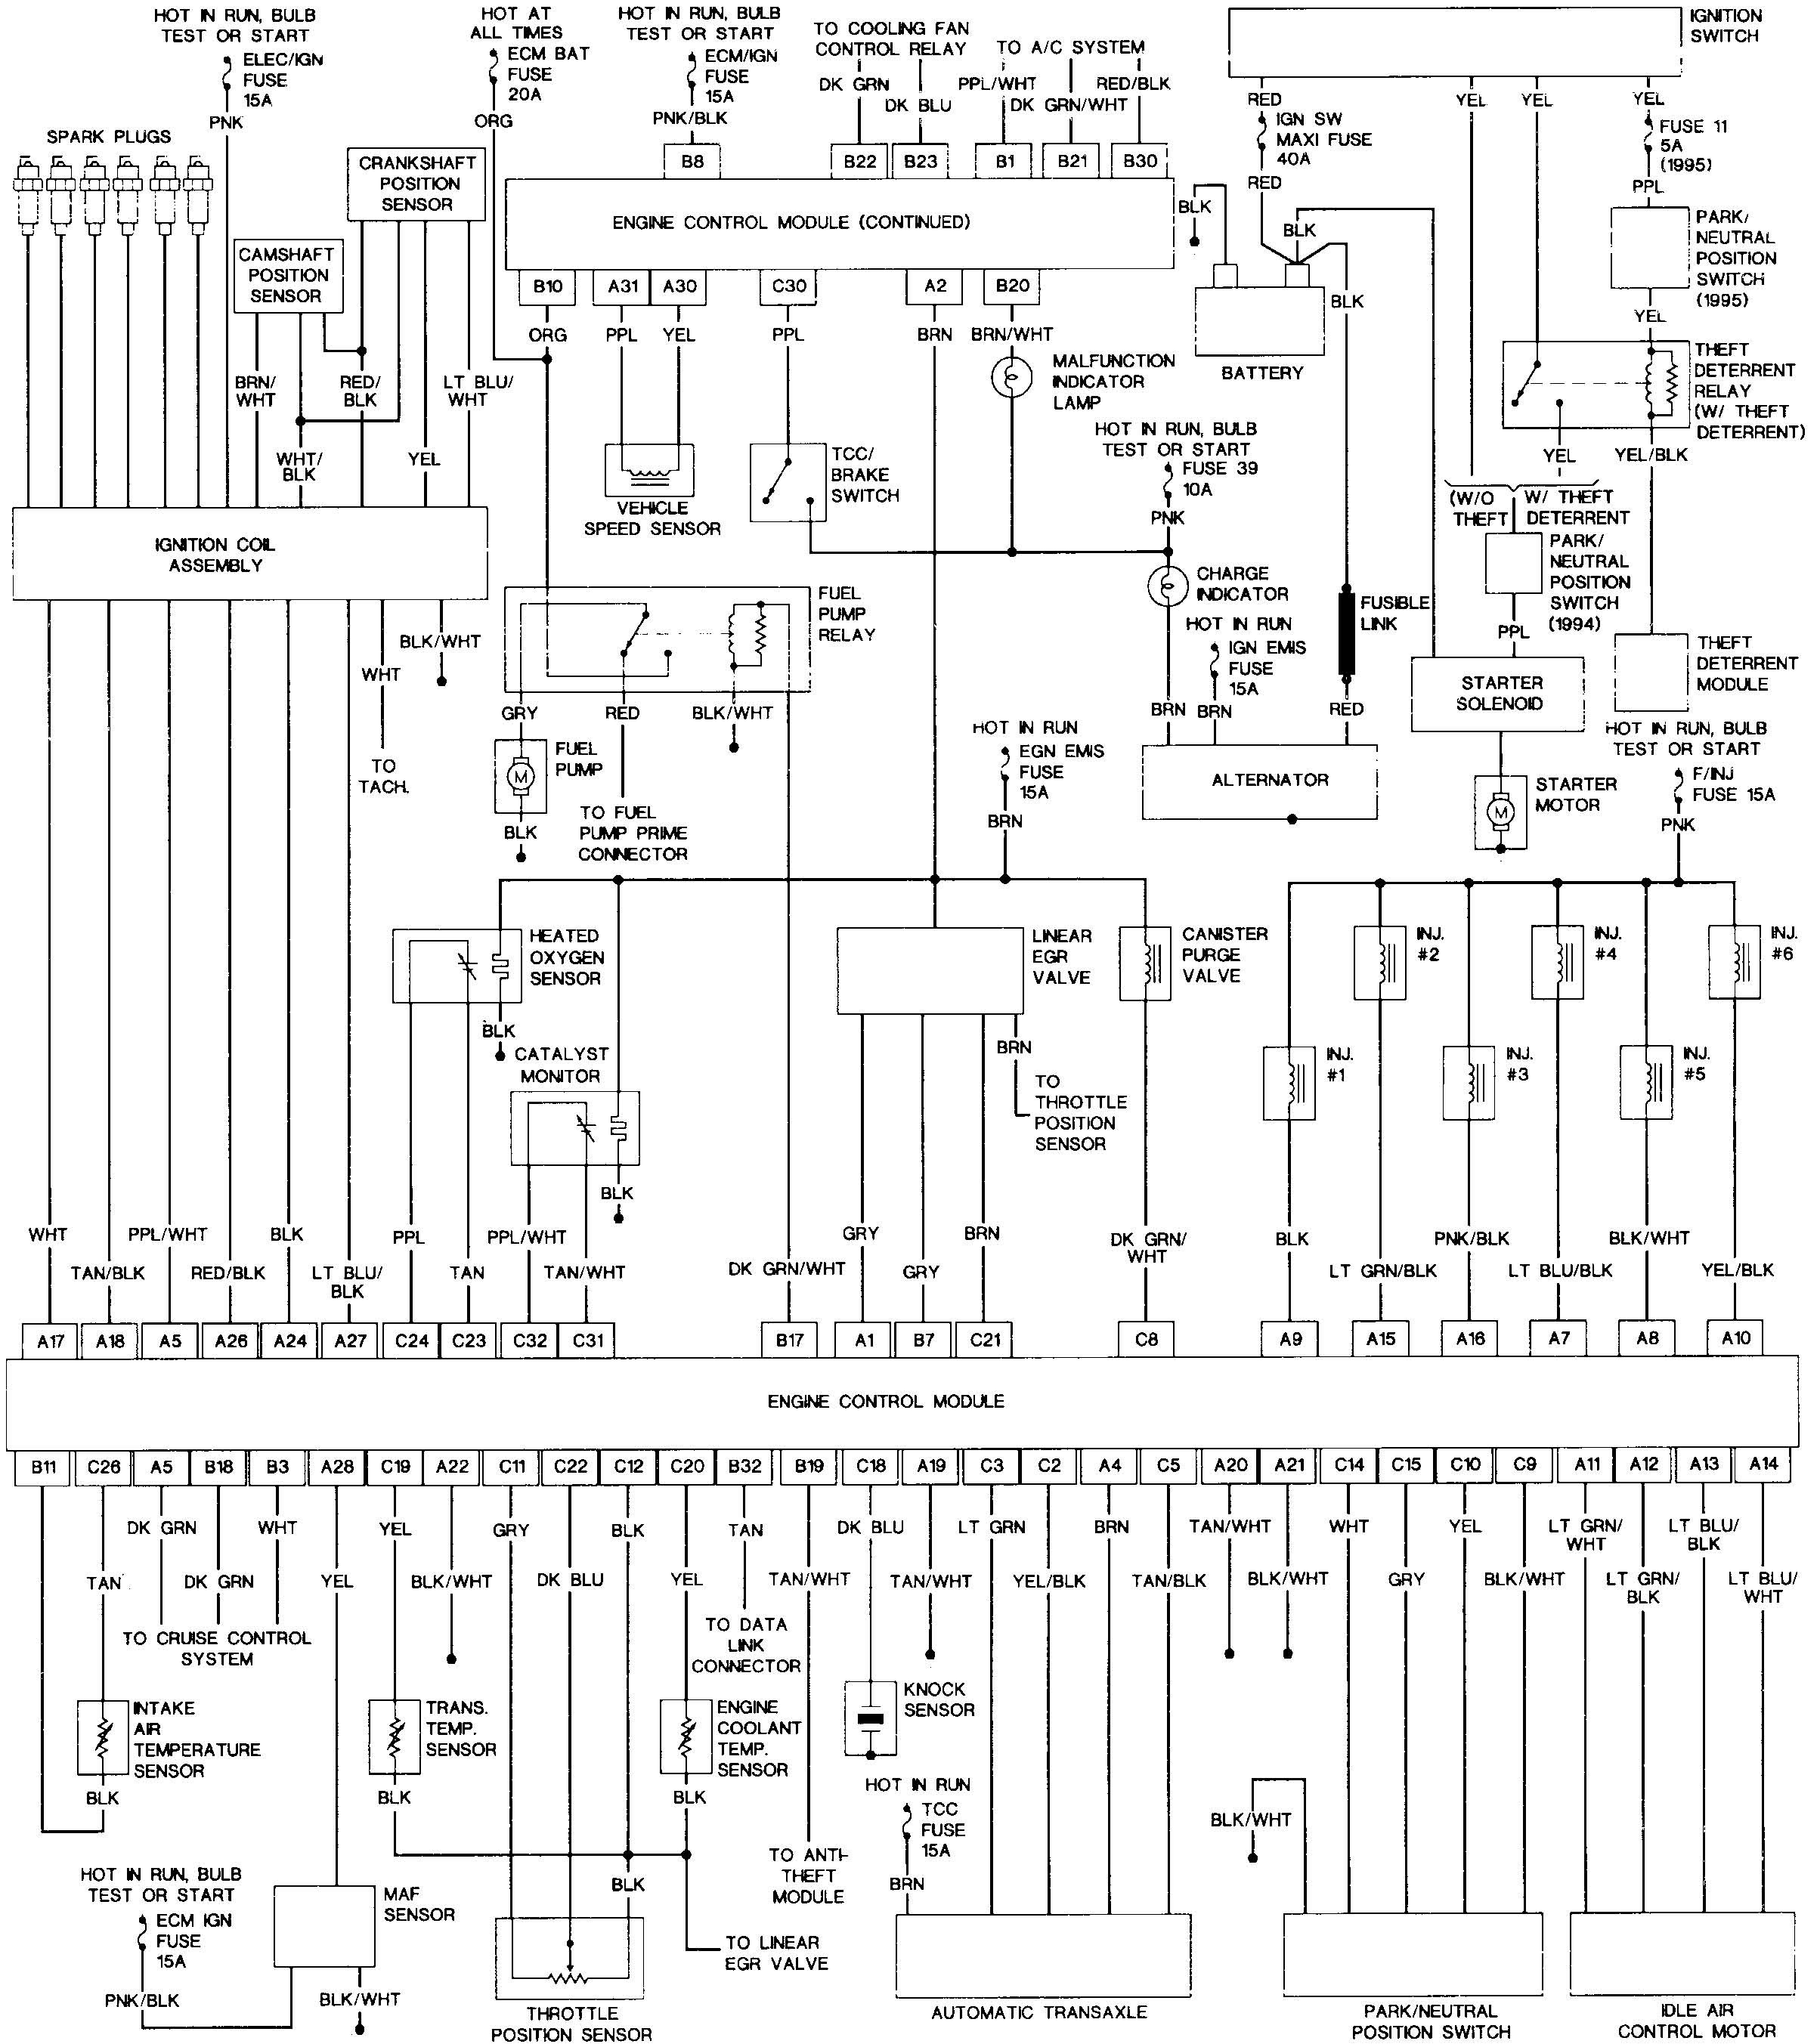 stereo wiring diagram for 1995 buick lesabre